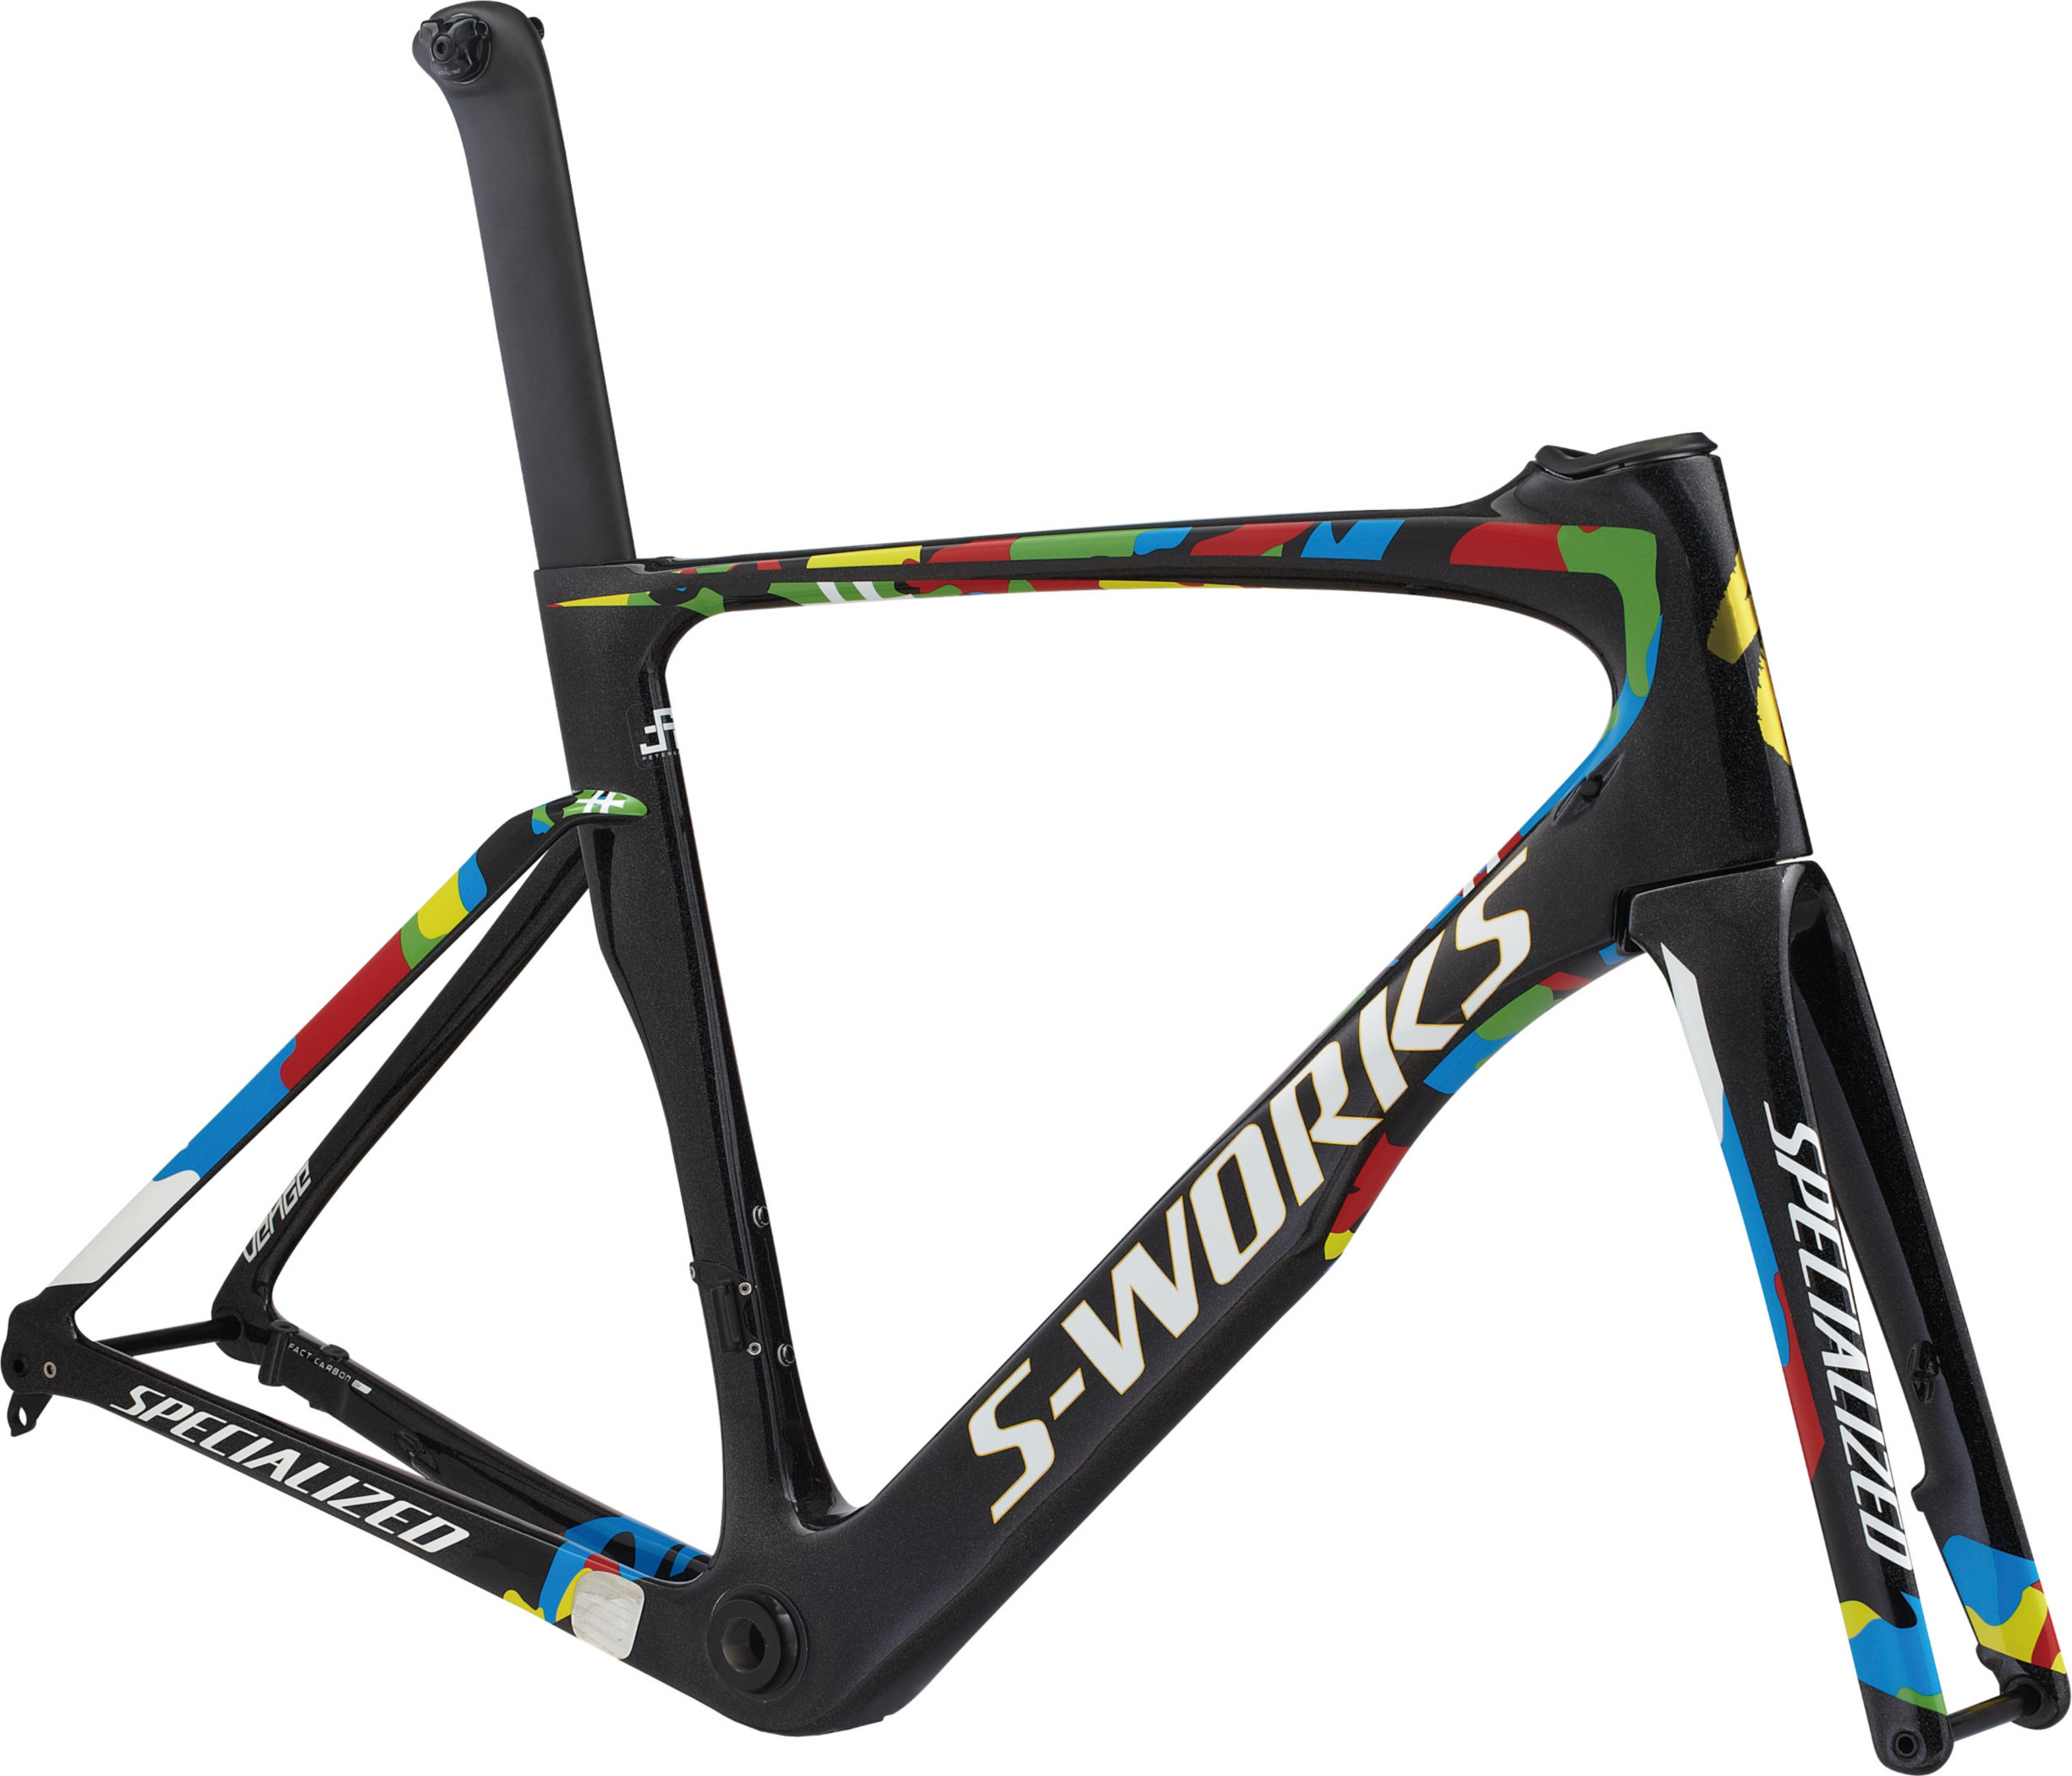 SPECIALIZED SW VENGE DISC VIAS FRMSET SAGAN WC 54 - SPECIALIZED SW VENGE DISC VIAS FRMSET SAGAN WC 54